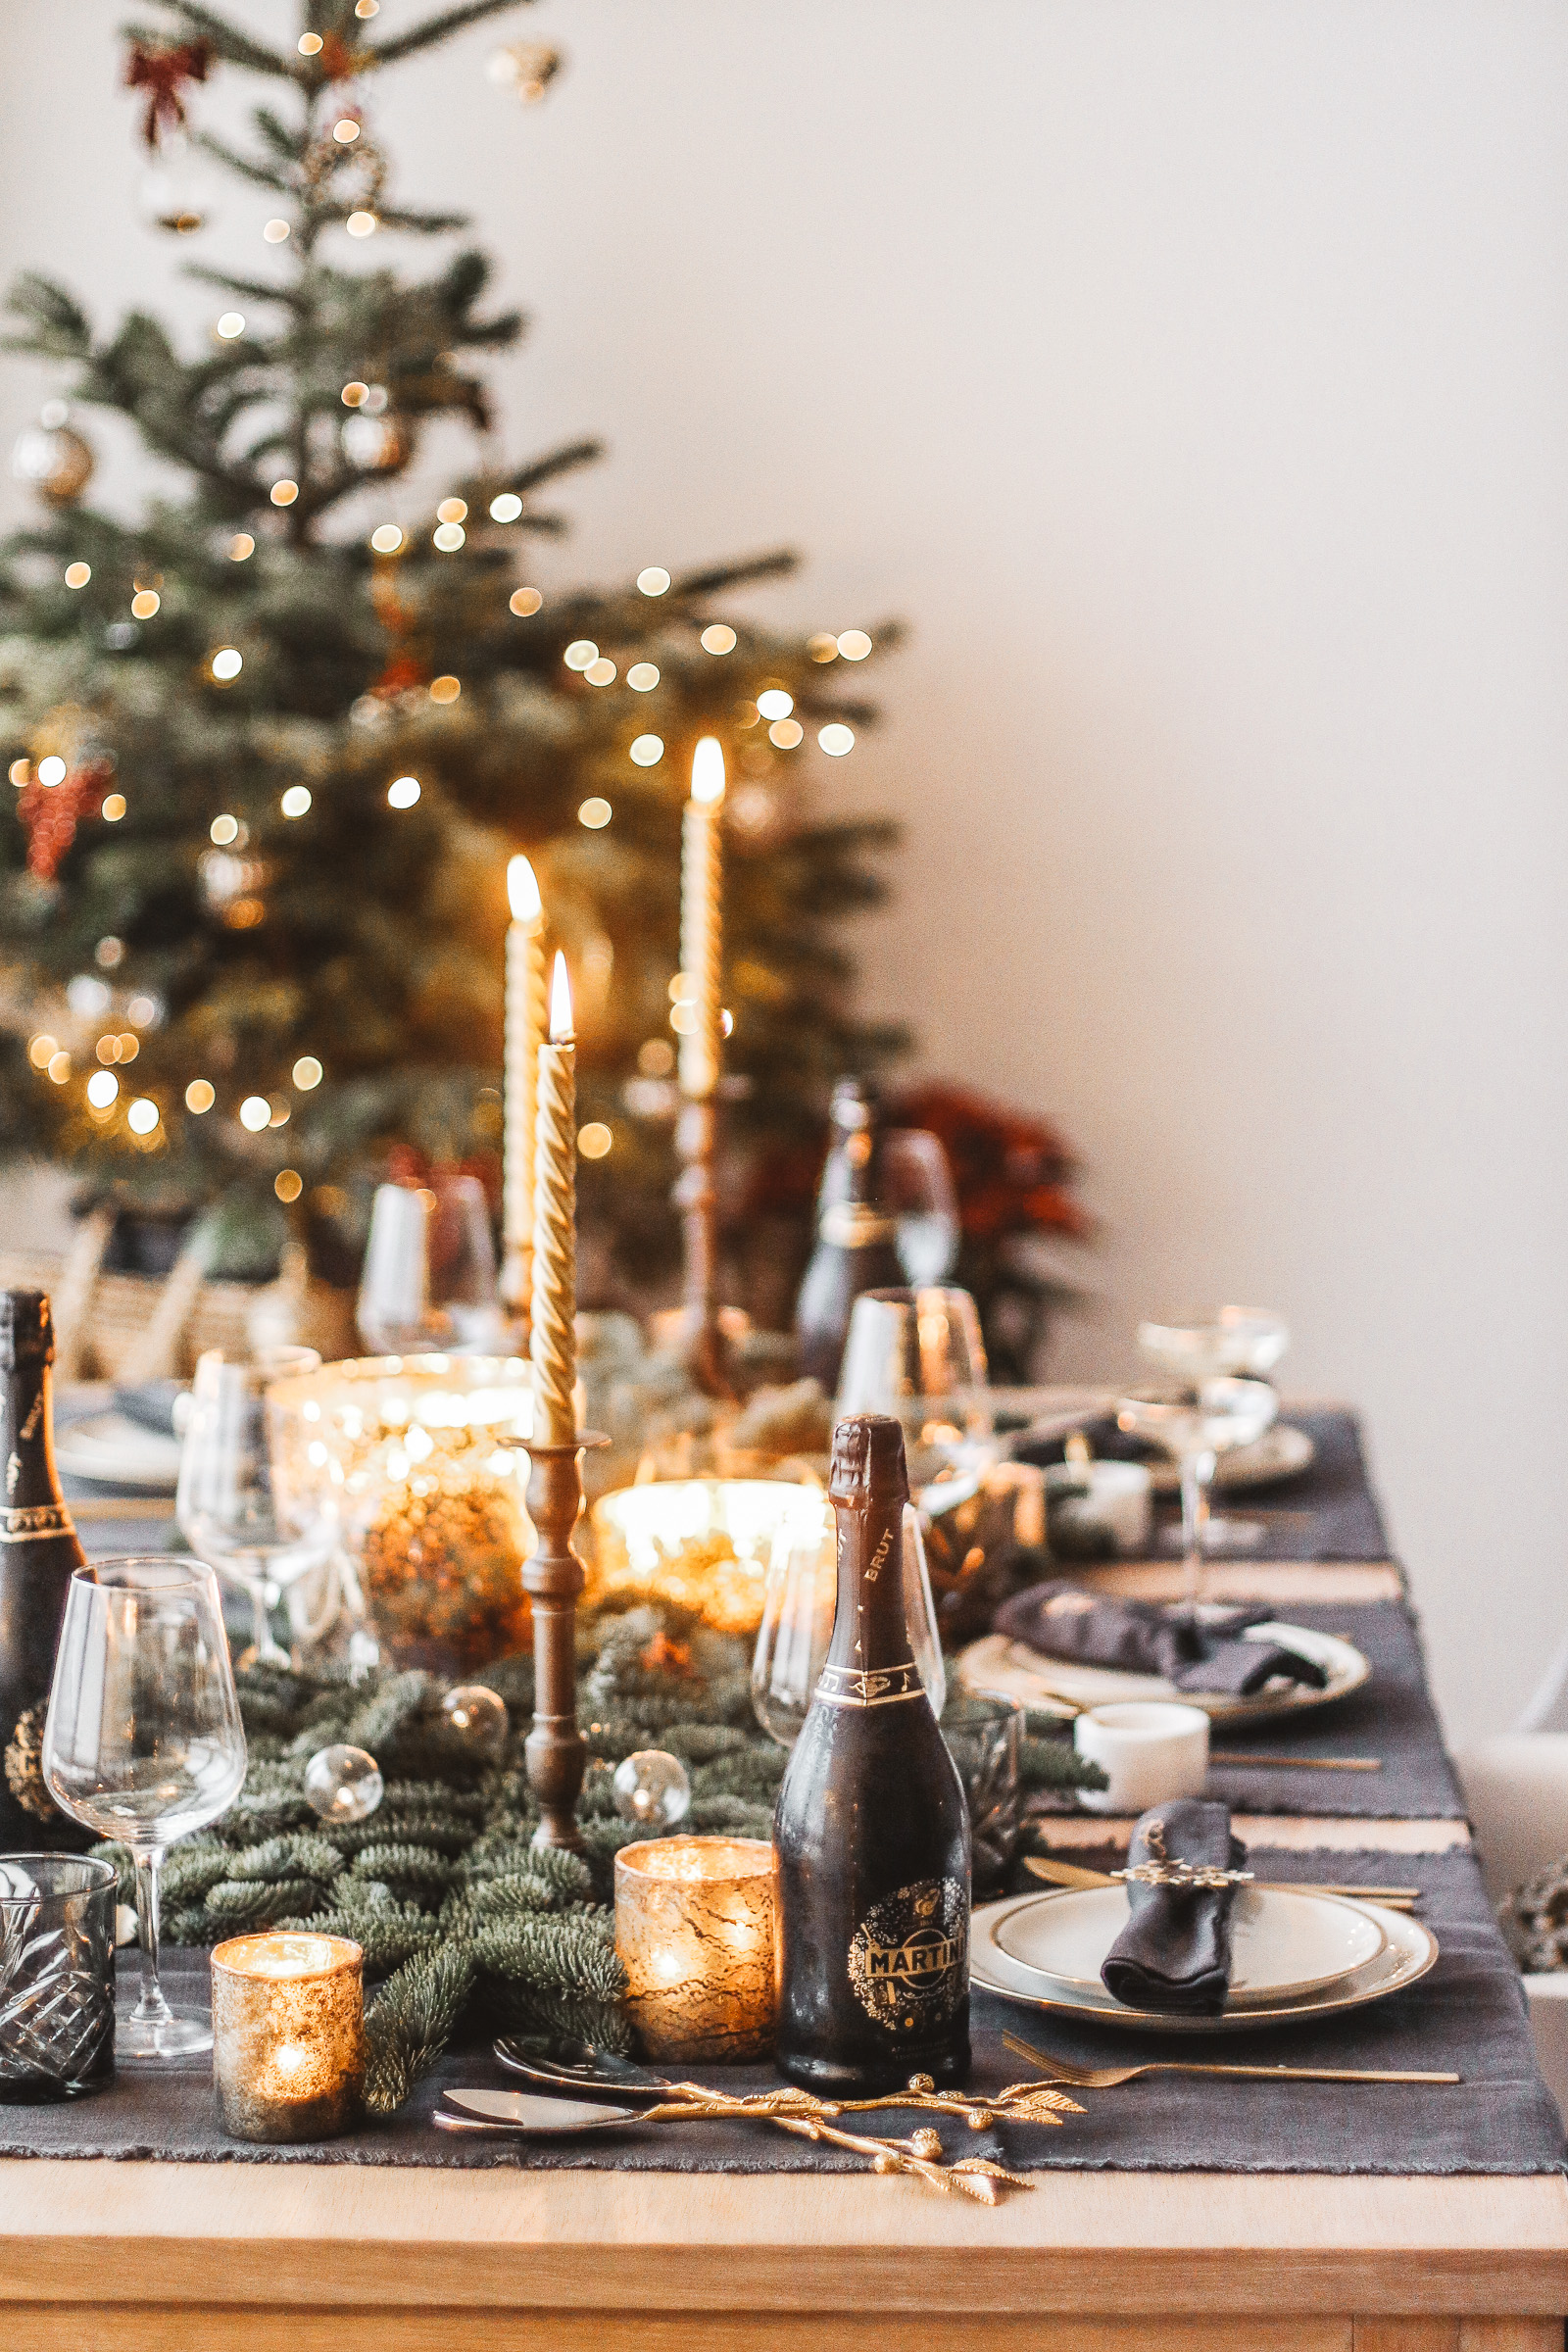 How To Decorate Your Christmas Table Milkywaysblueyes Lifestyle Blog